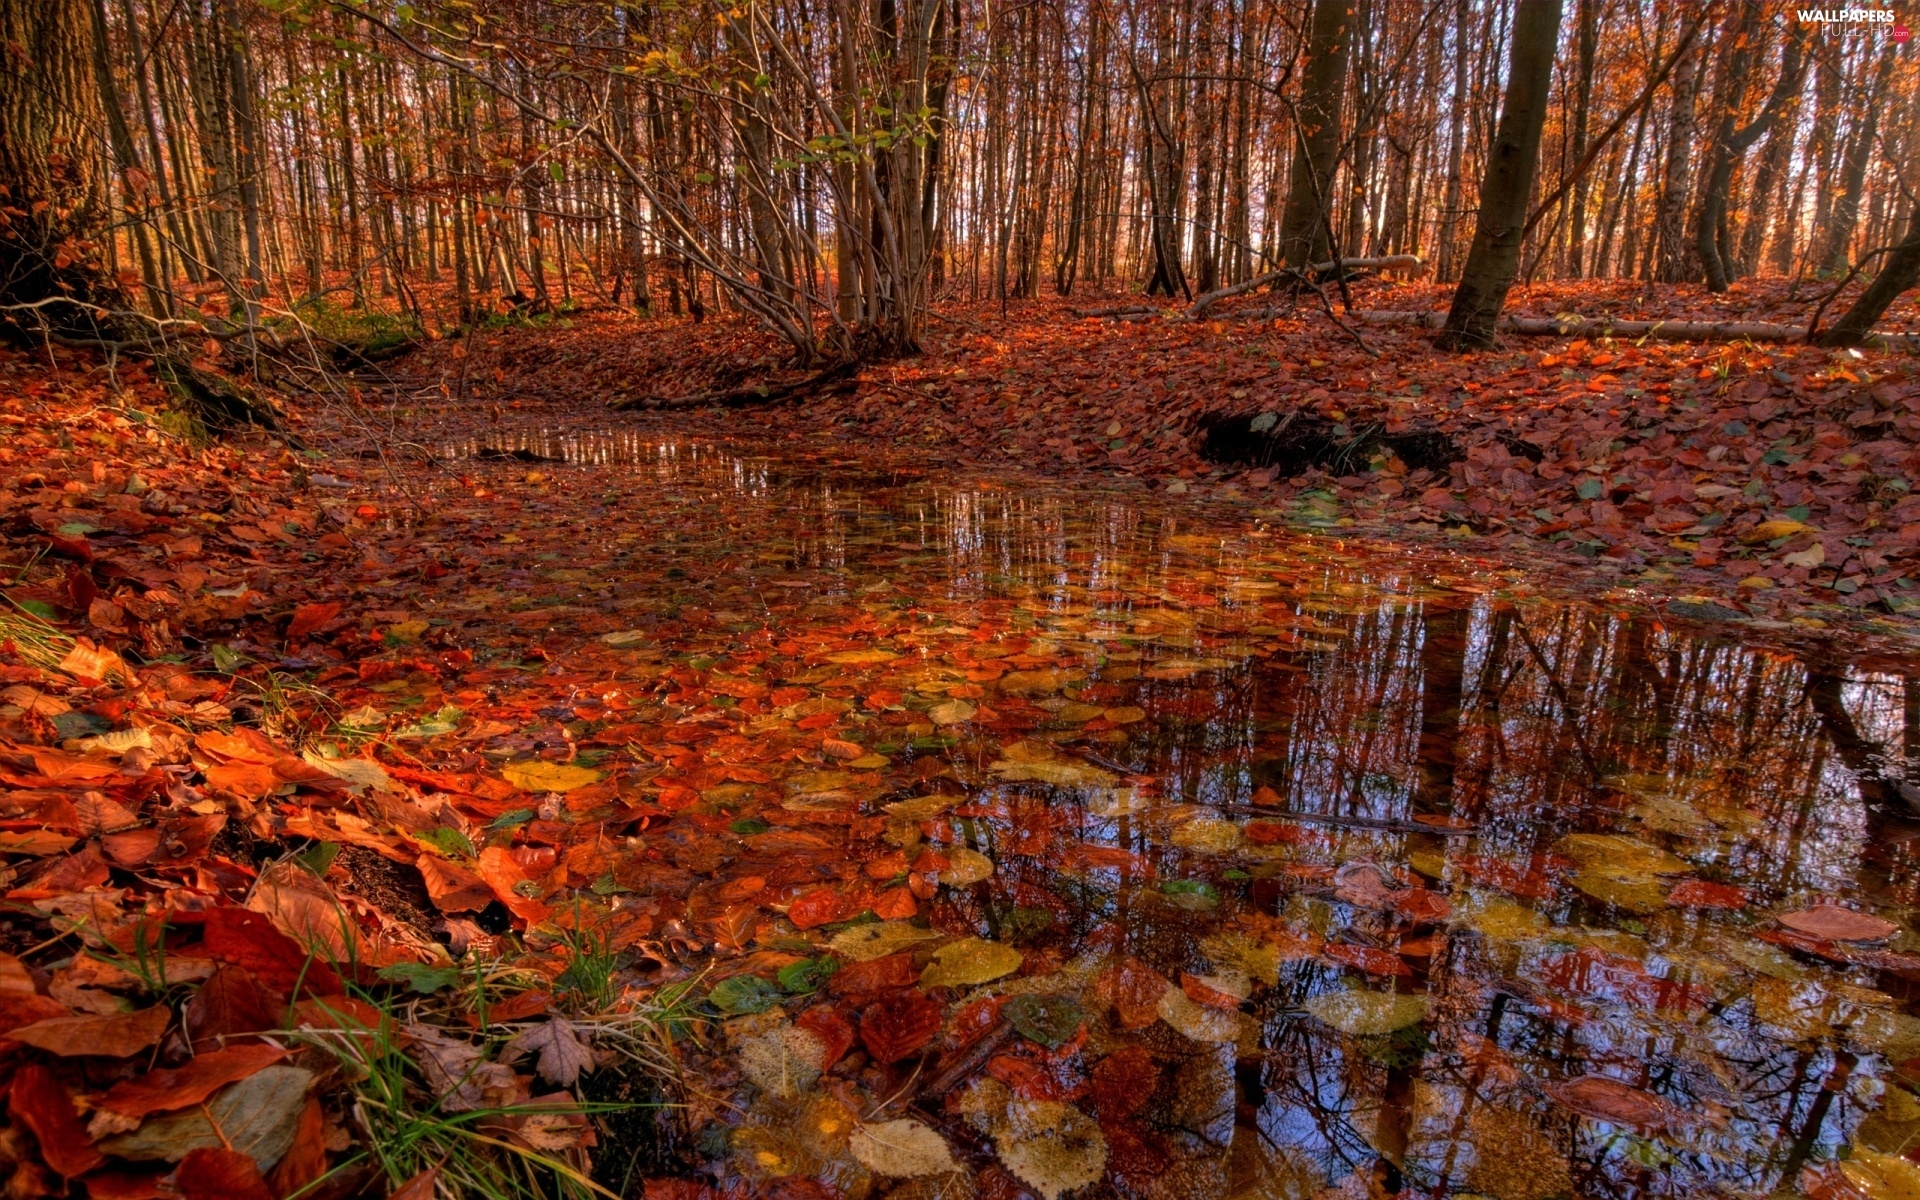 puddle, Leaf, autumn, forest